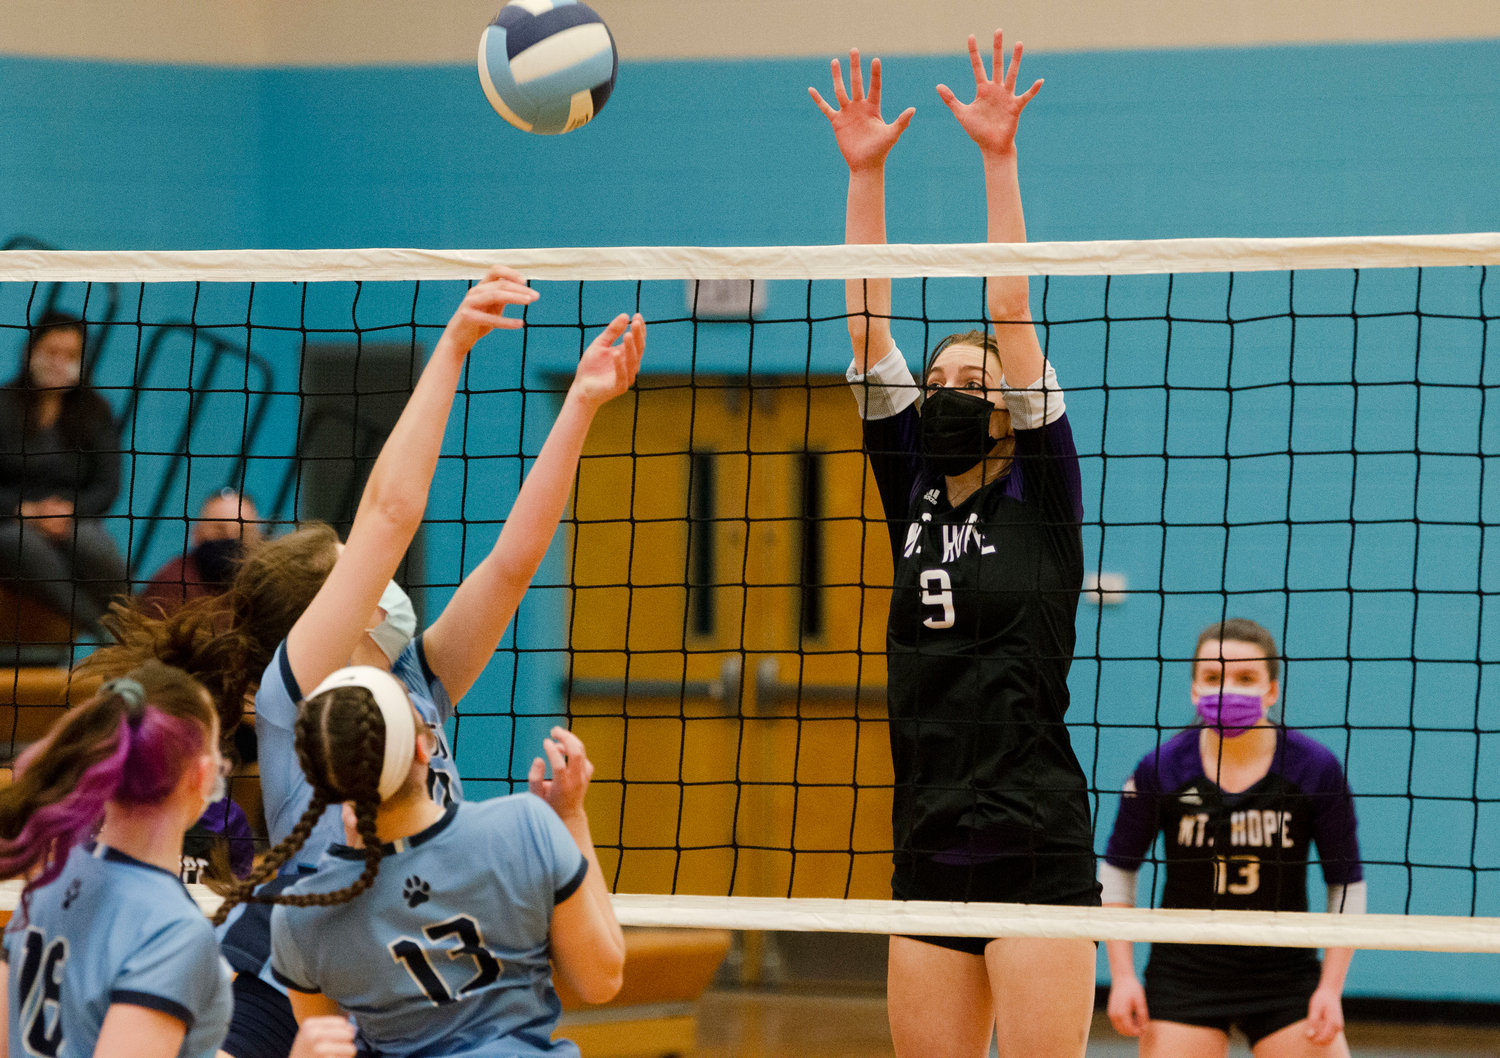 Middle hitter, McKenna Reardon (left), blocks a Panther's shot back over the net with teammate Mia Shaw looking on